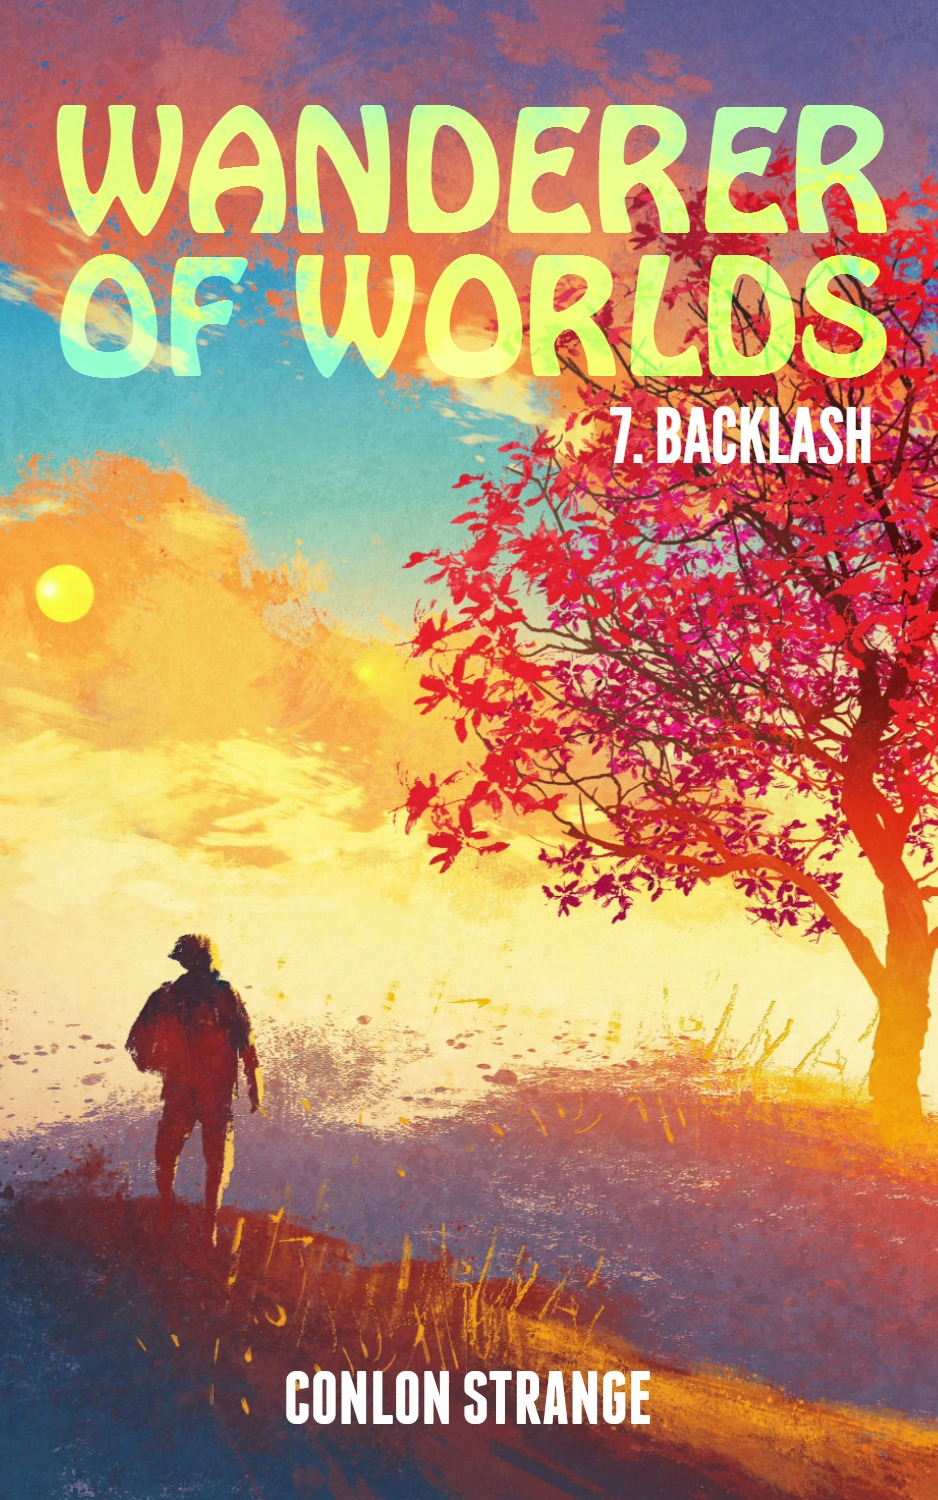 Wanderer Of Worlds  BACKLASH